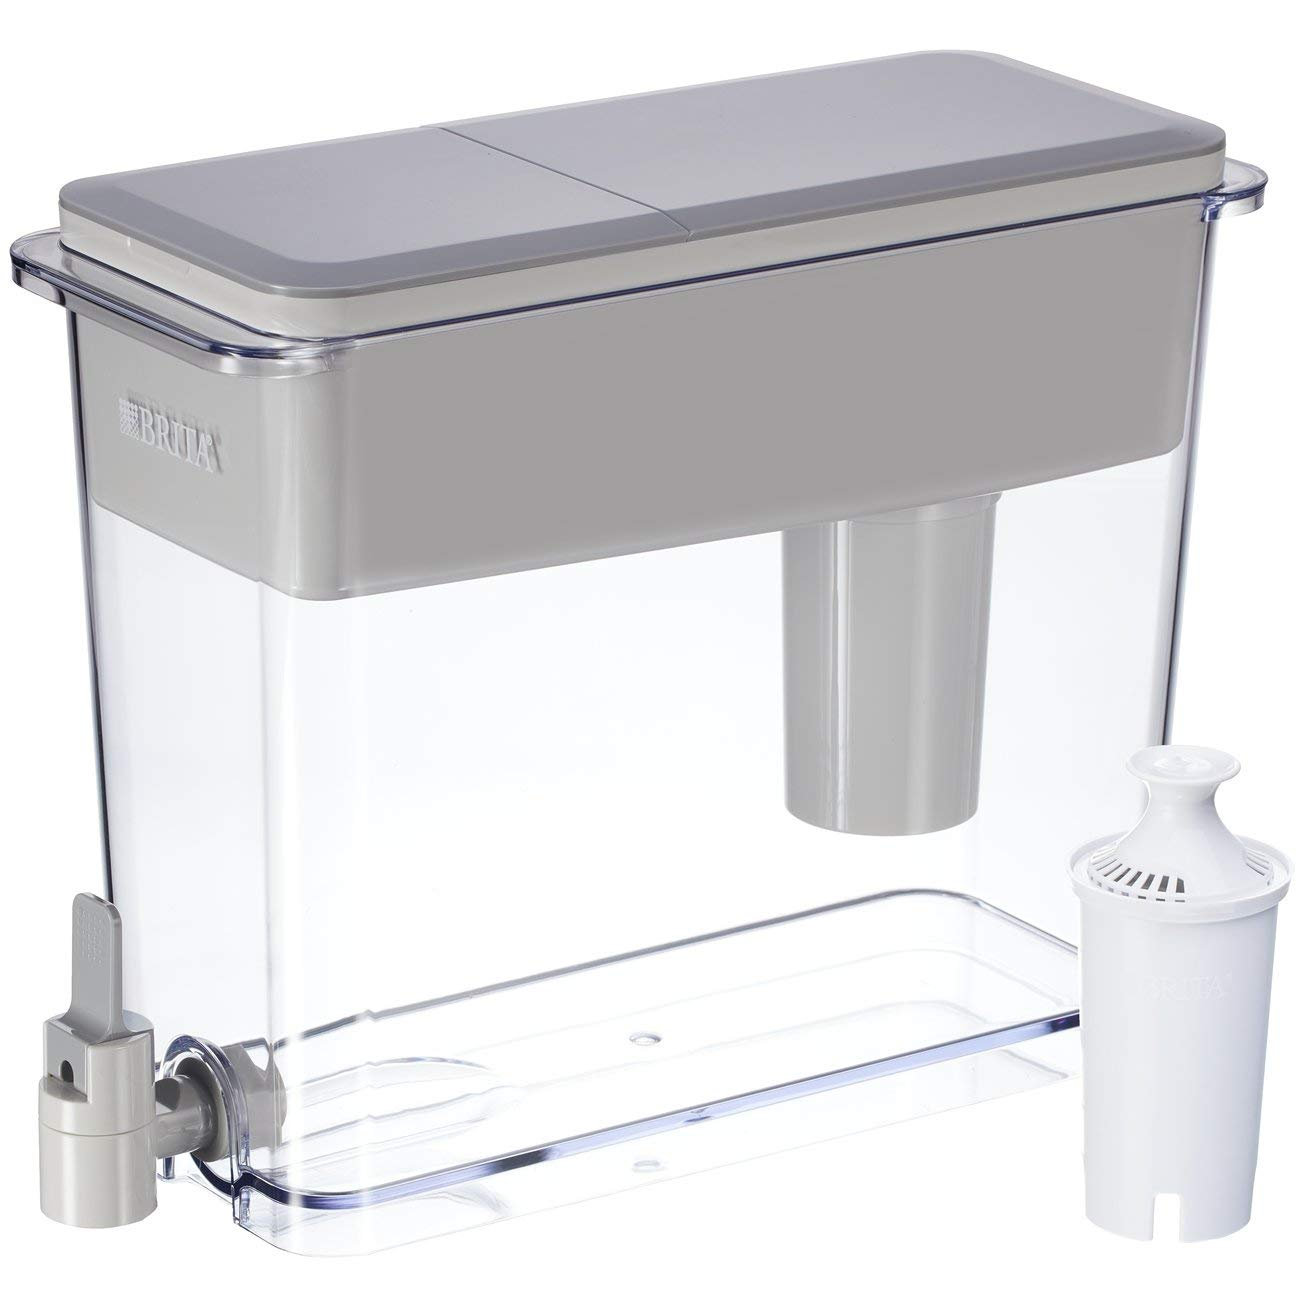 Brita Extra Large 18 Cup Filtered Water Dispenser with 1 Standard Filter BPA Free